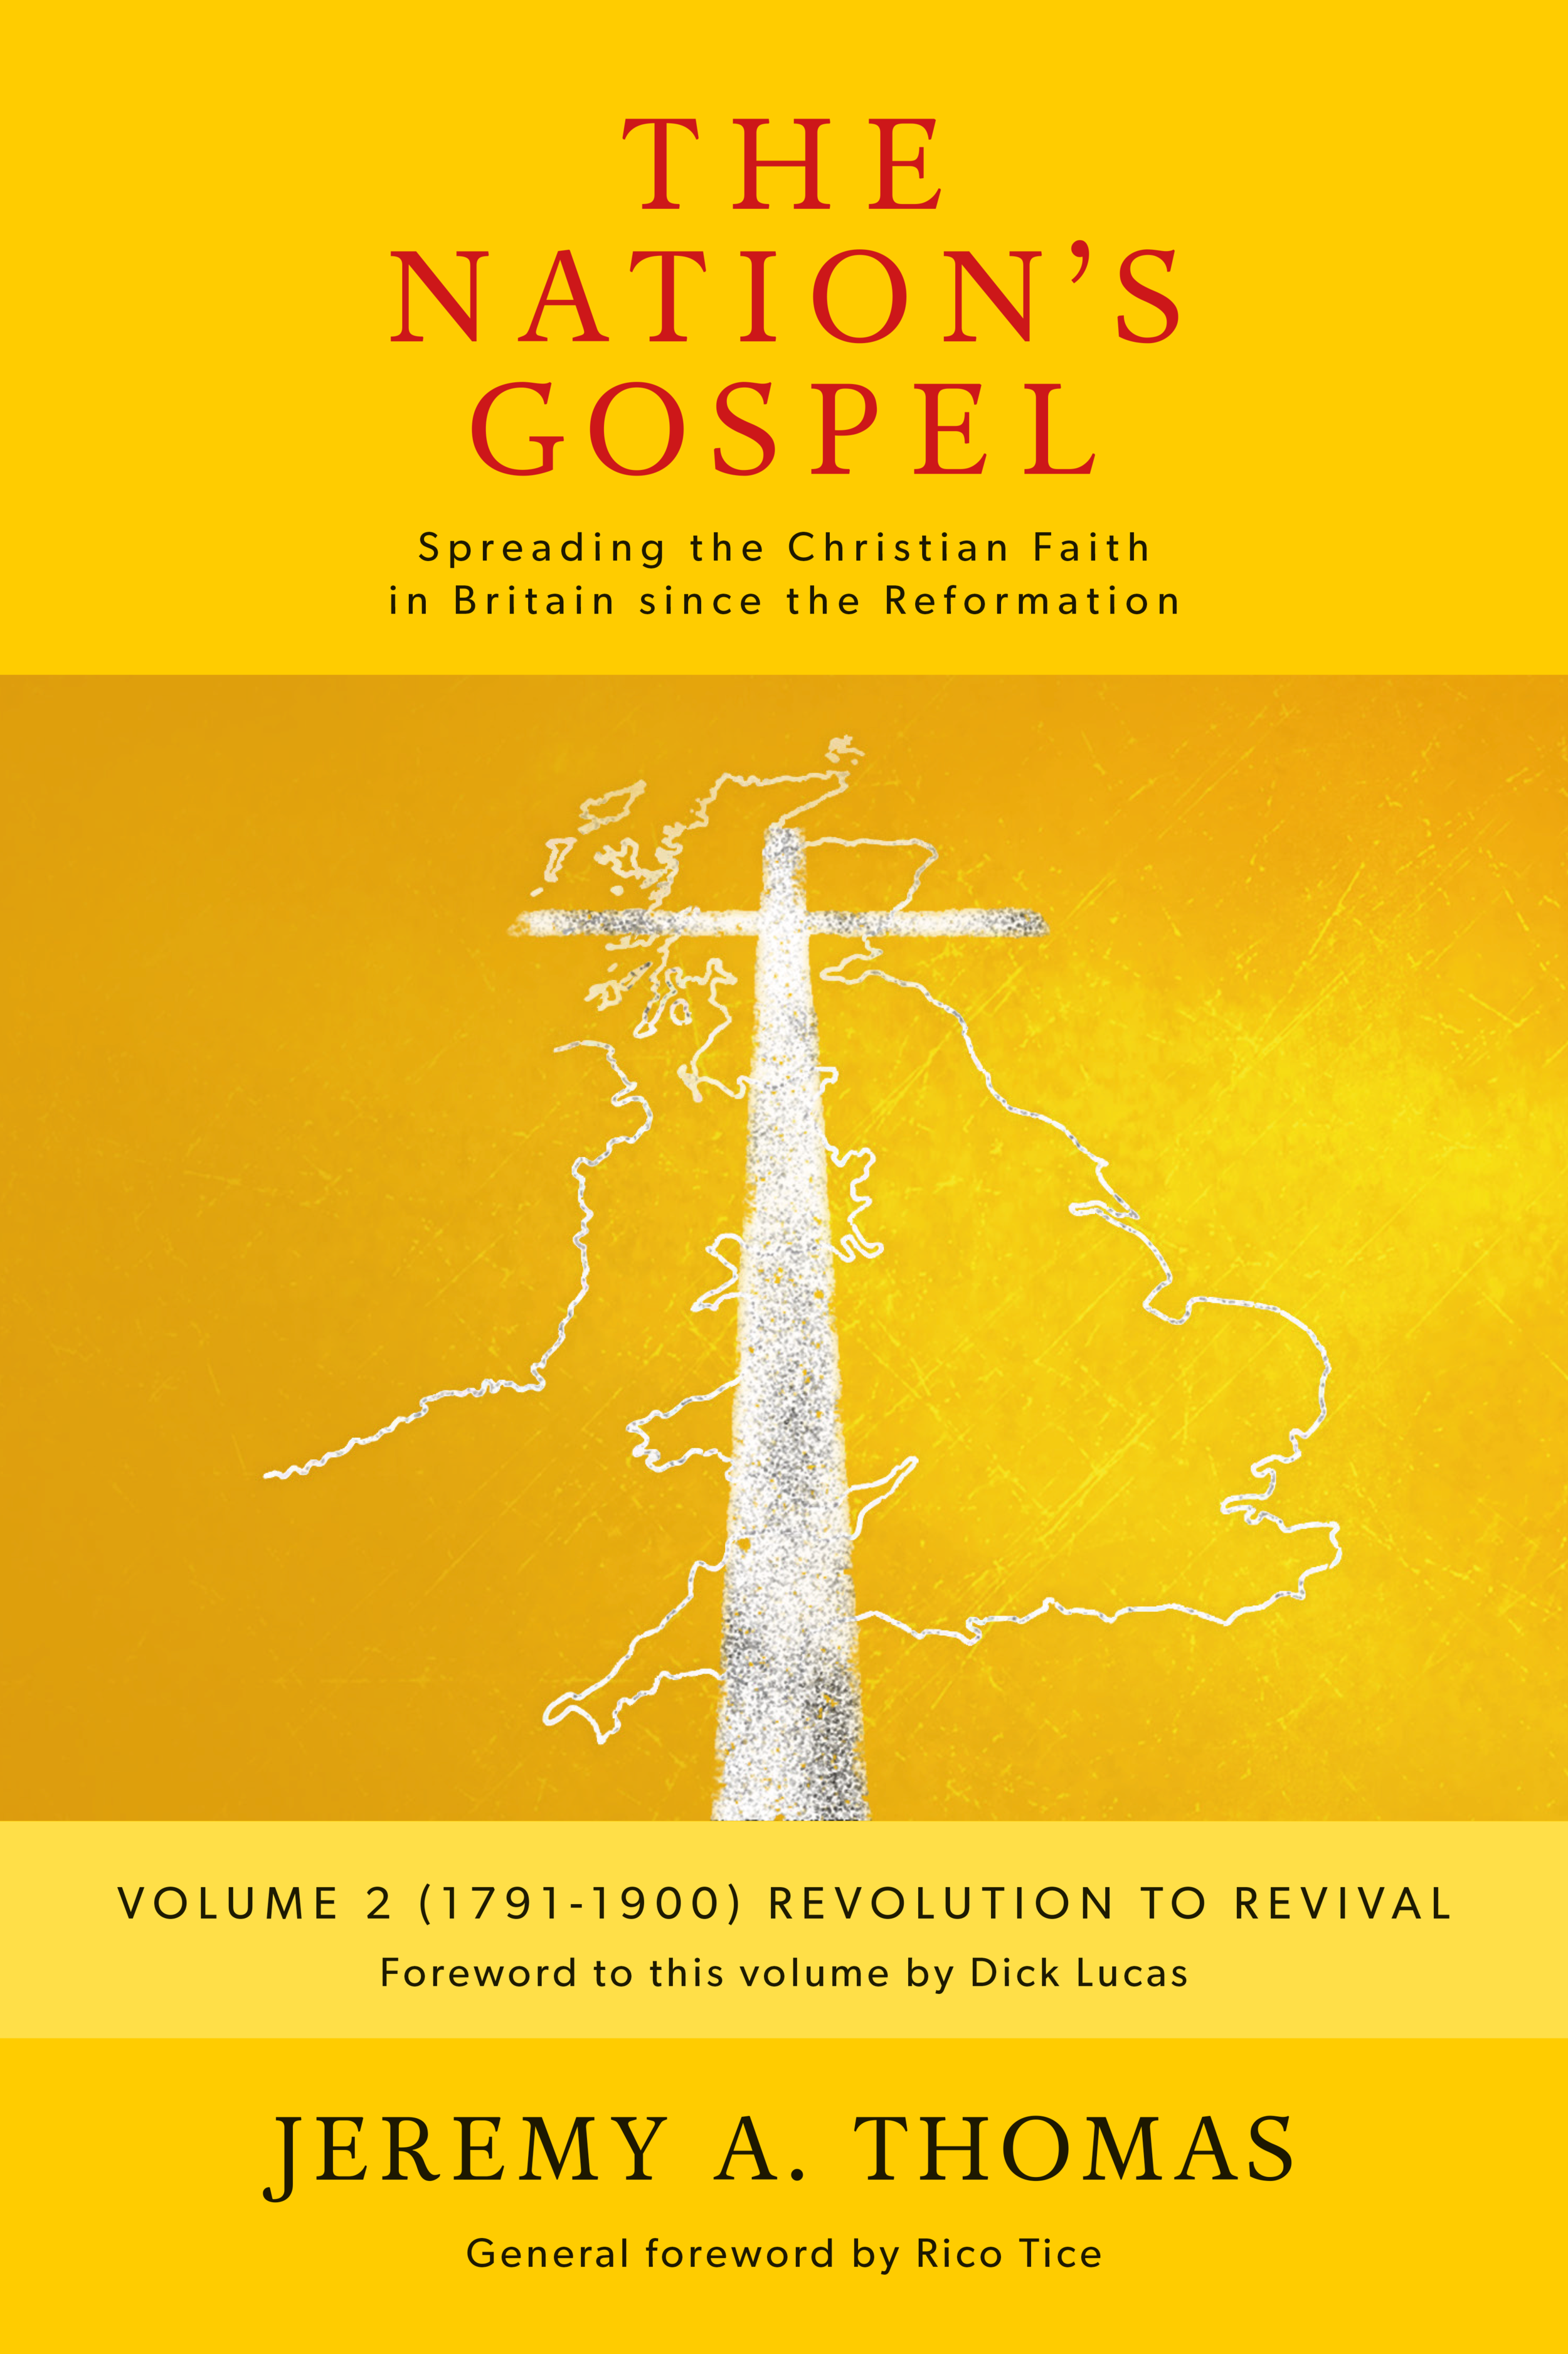 The Nation's Gospel Vol 2 (1791-1900) - Relates the expansion of evangelism and Christian social work in the 19th centuryExpected release: Early 2020